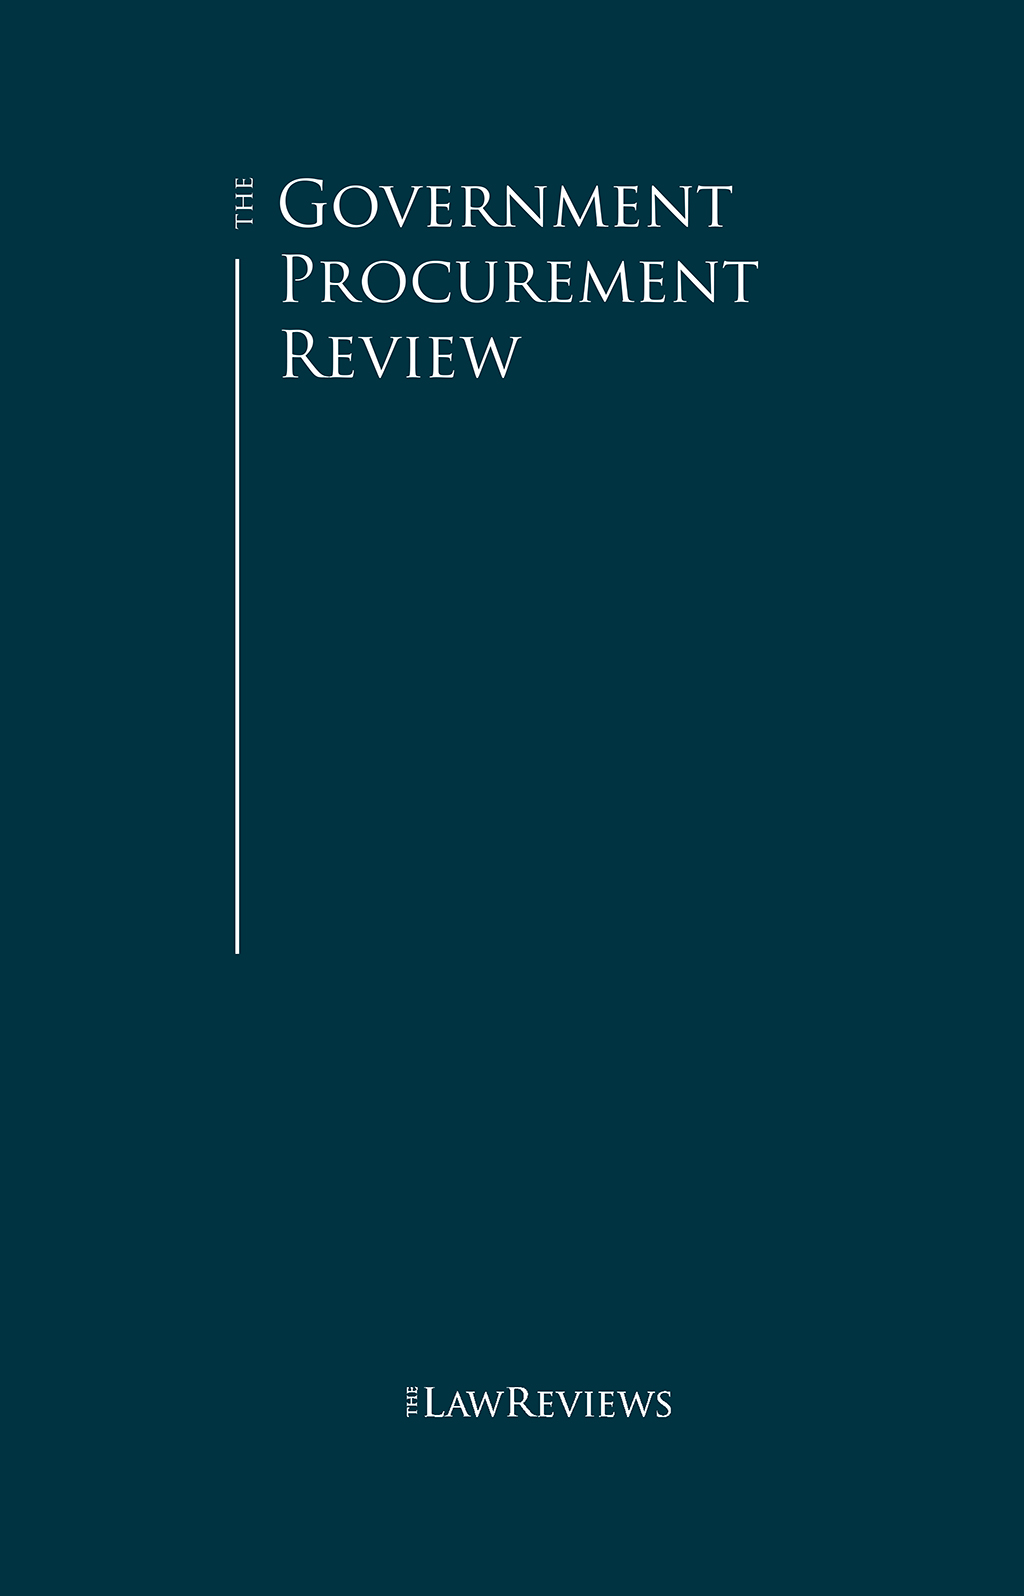 The Government Procurement Review